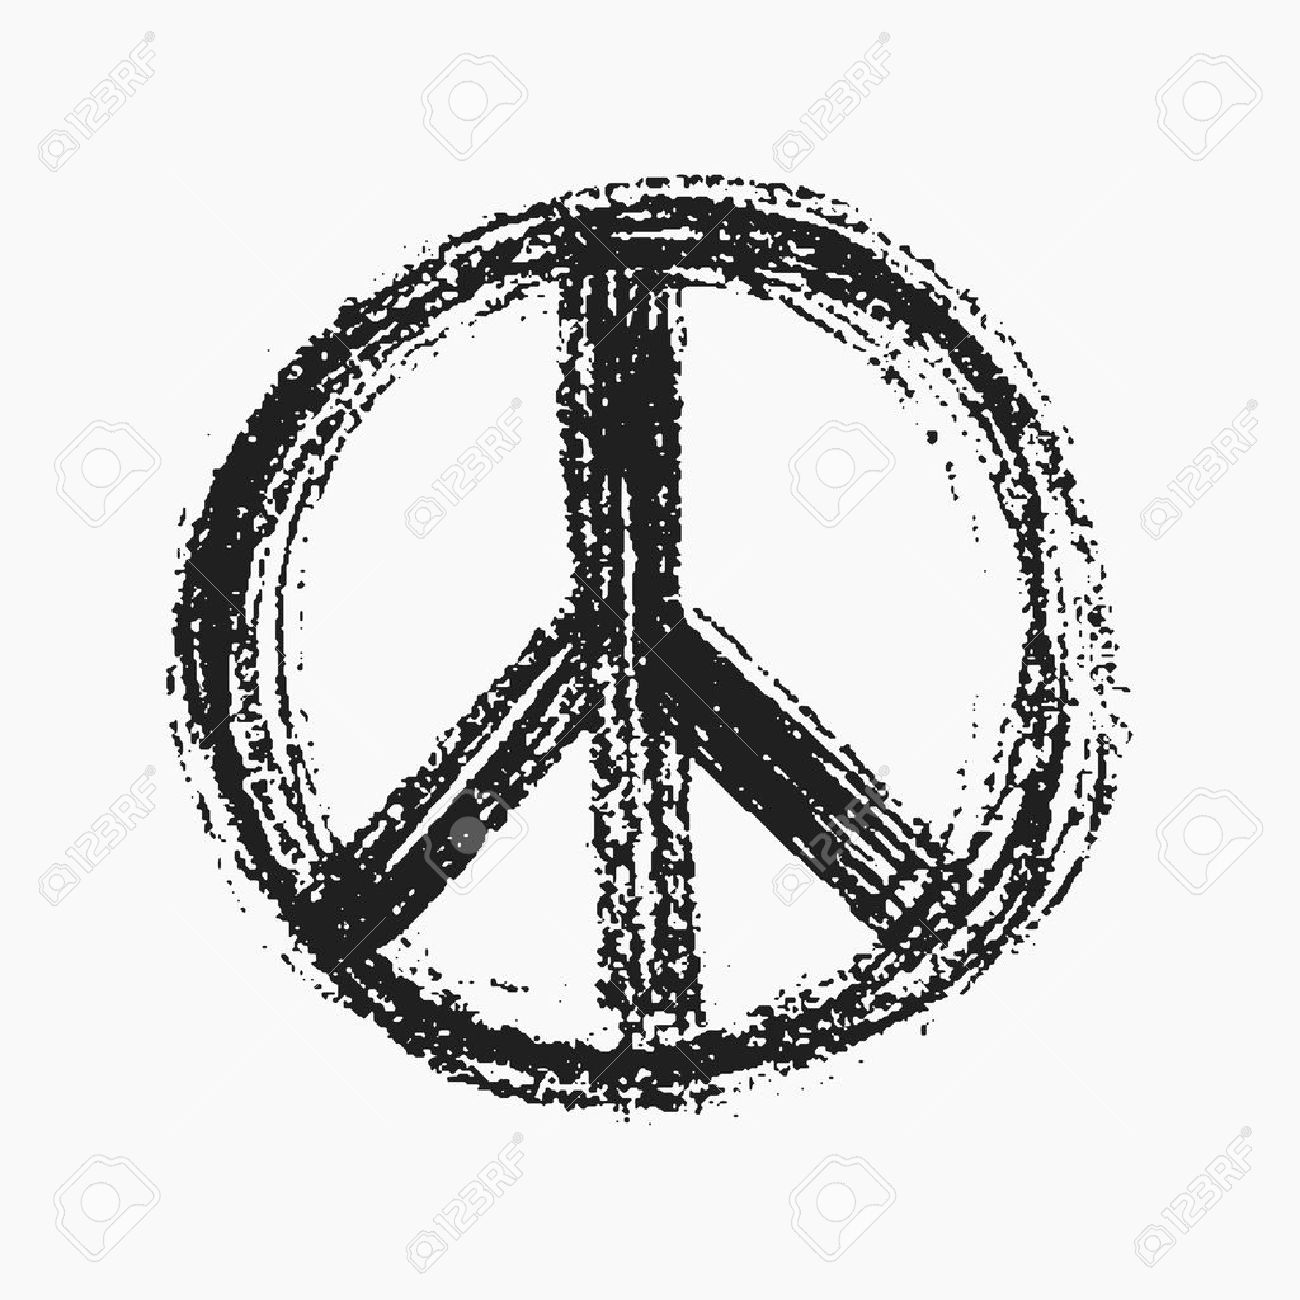 Red Peace Symbol Created In Grunge Style Royalty Free Cliparts